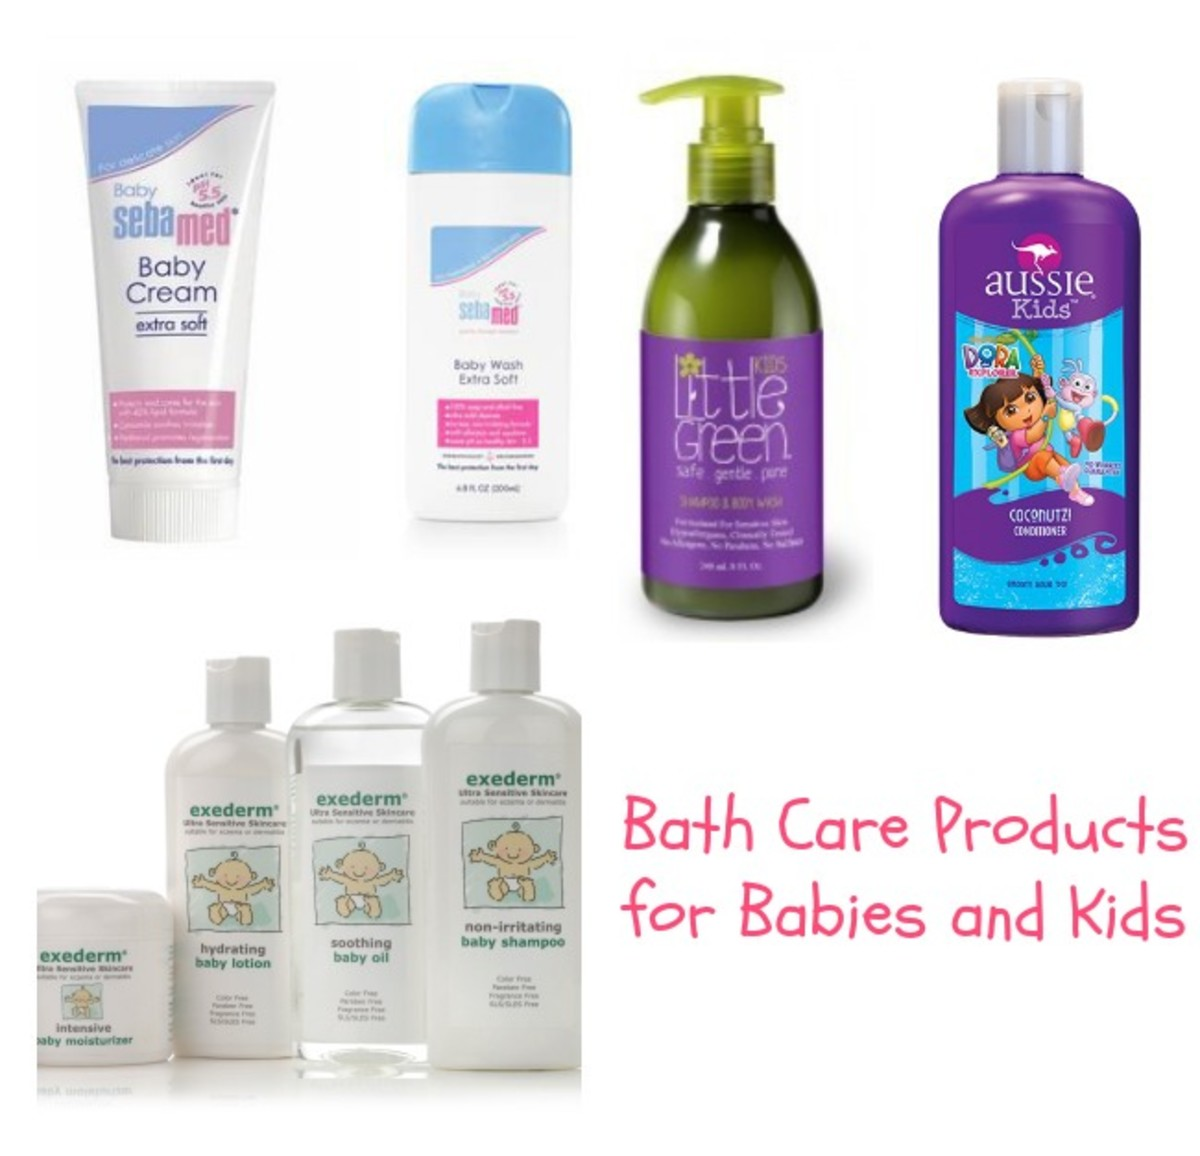 Bath Care Products for Babies and Kids.jpg.jpg